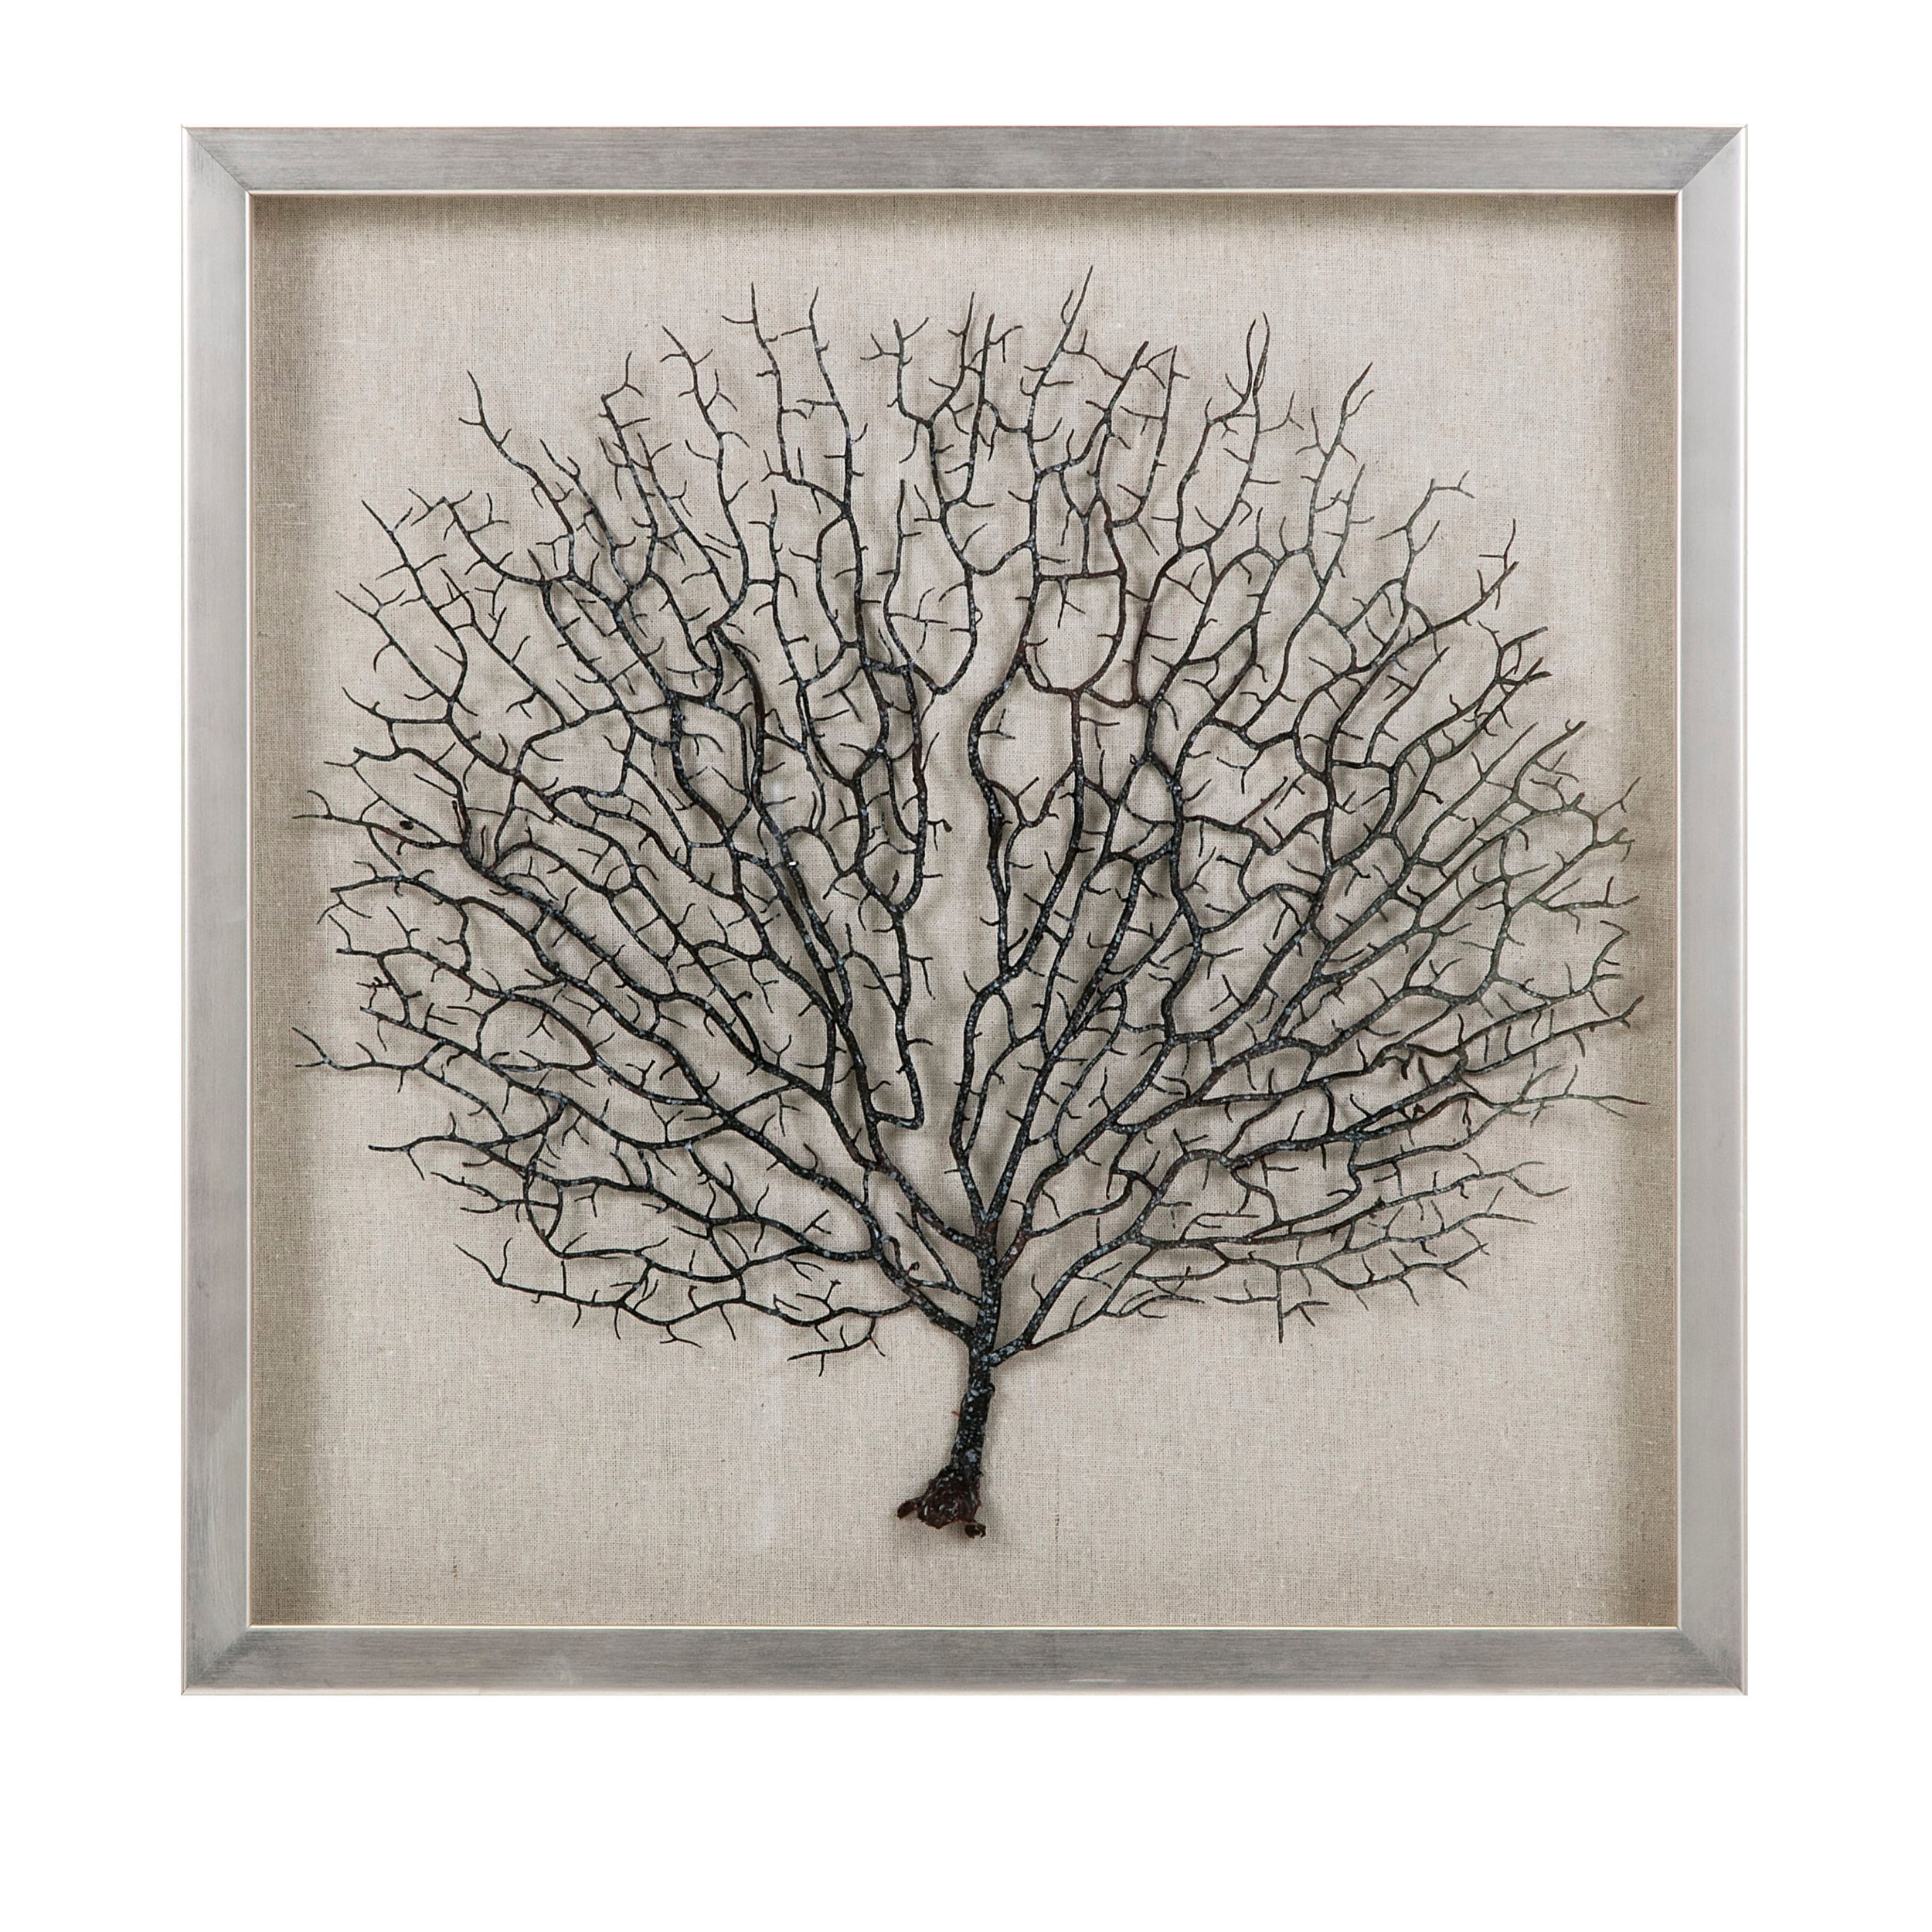 Bodaway-Coral-in-Shadowbox-with-Frame-19.75-inches-long-x-19.75-inches-high-x-1.5-inches-wide-2d1fe3a8-9116-4c6b-8c65-4b528f54583c.jpg